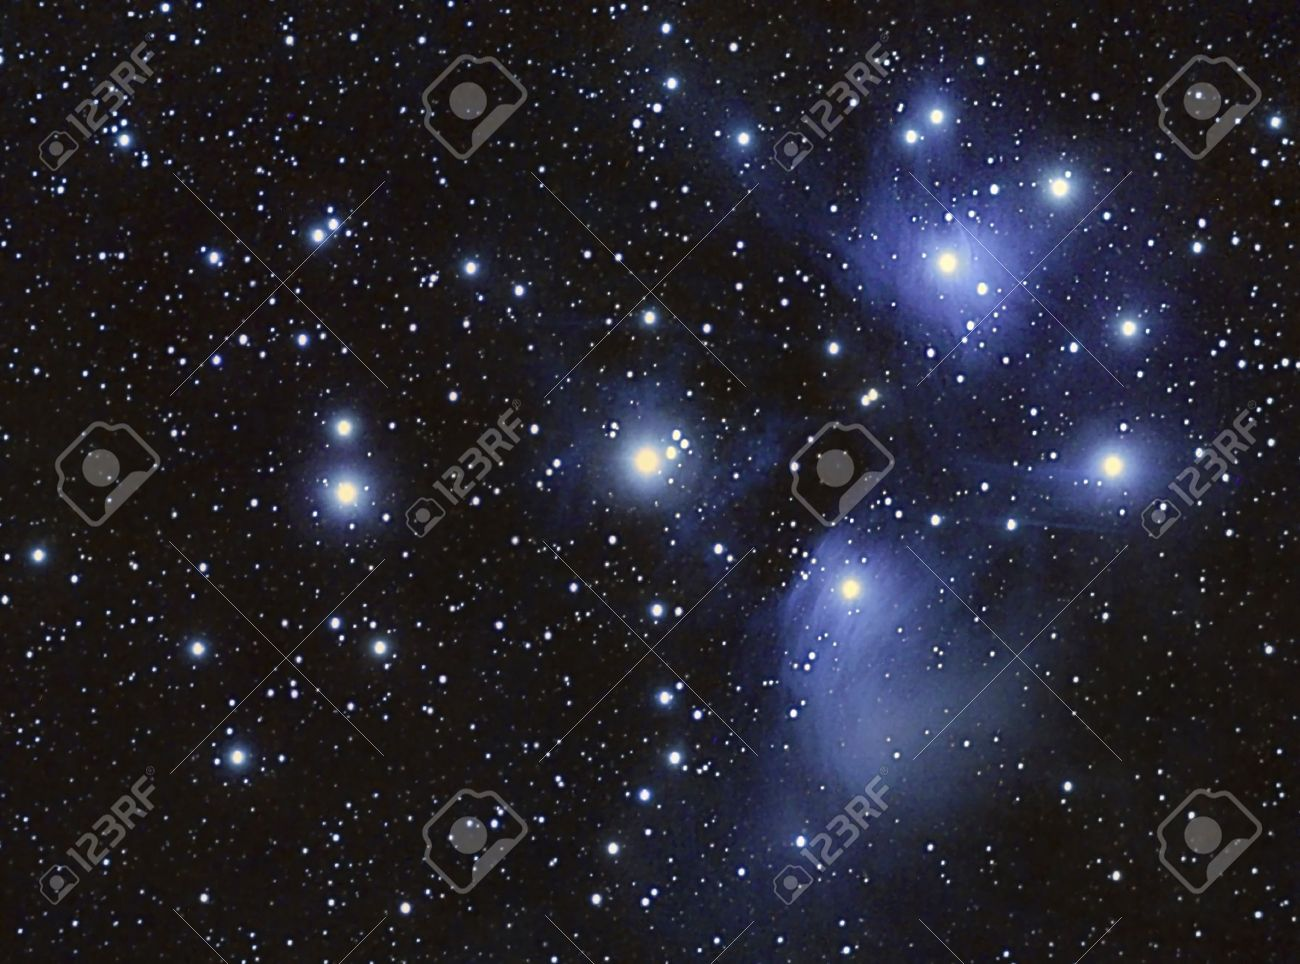 A Stars cluster and nebula, taken with apochromatic telescope - 15797330